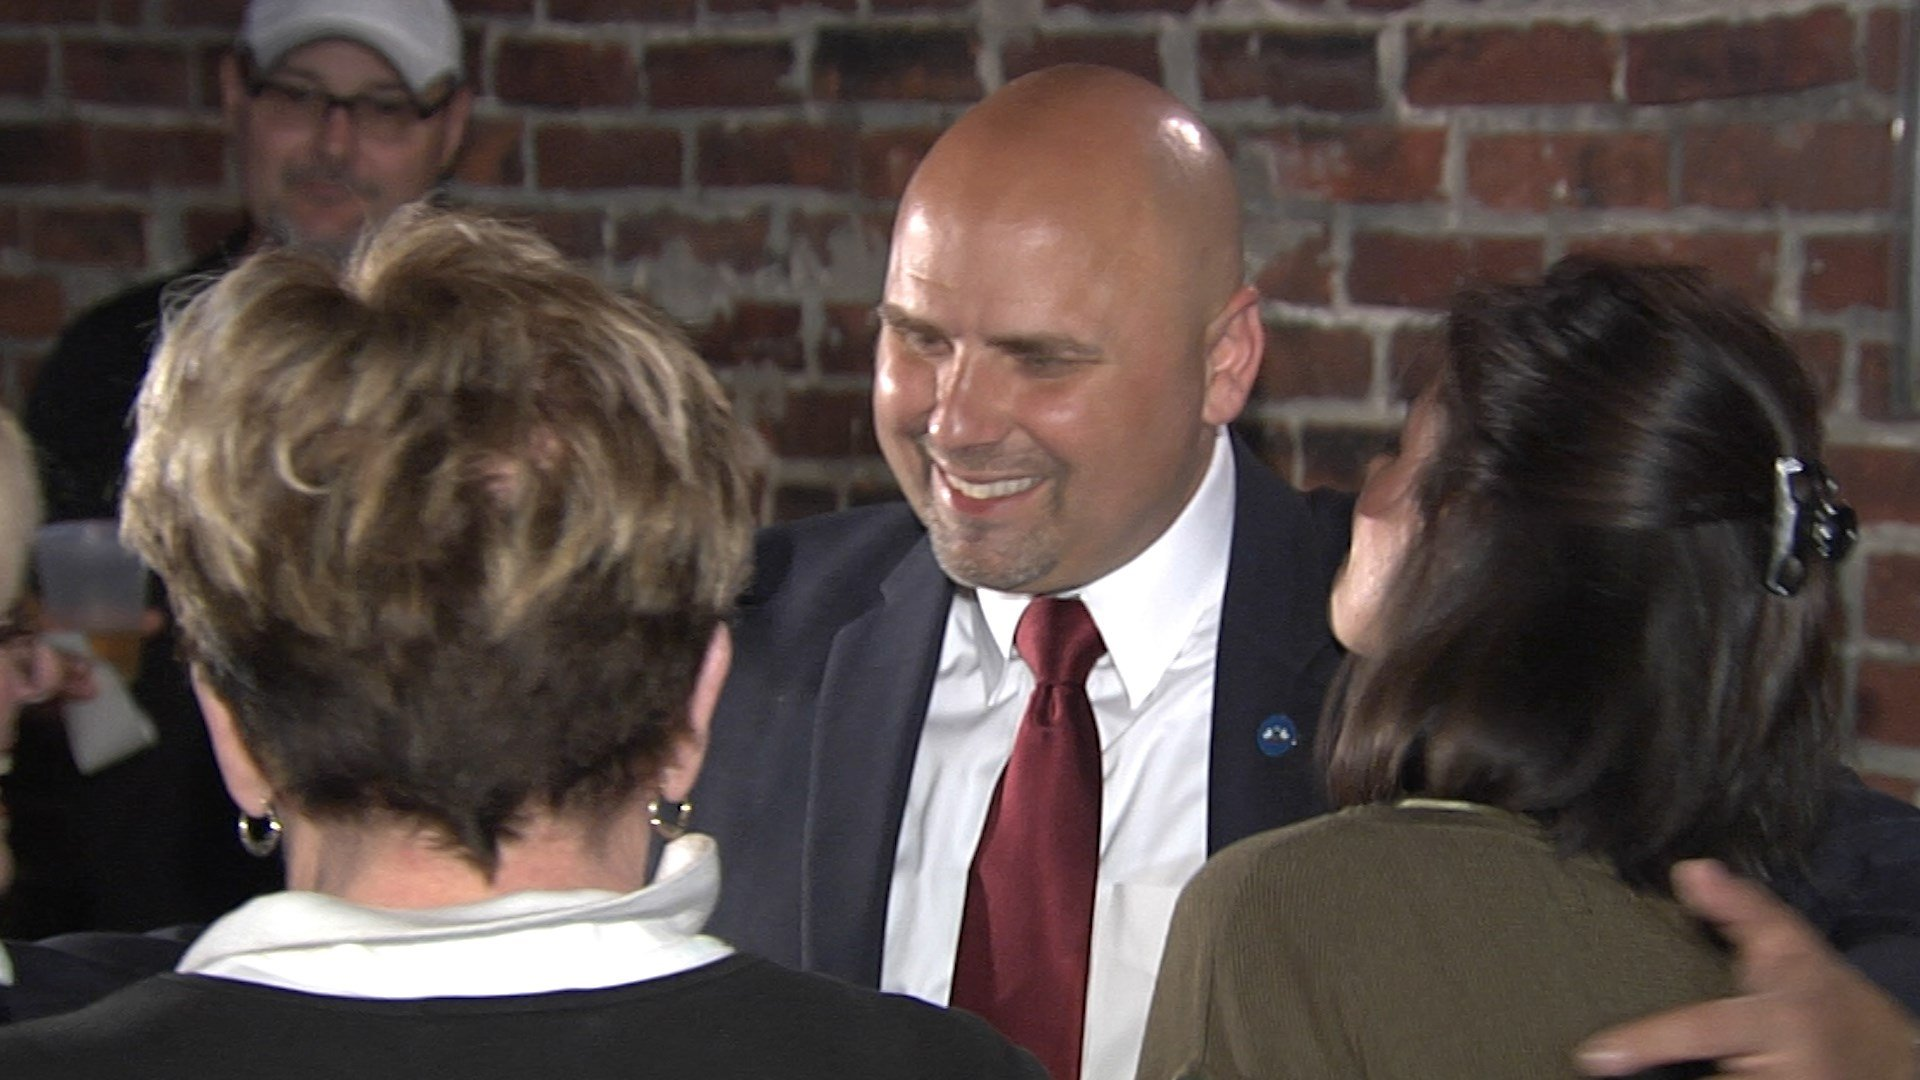 Fairway Auto Center >> Merski Finishes Second In Race for Democratic Mayoral Nomination - Erie News Now | WICU and WSEE ...